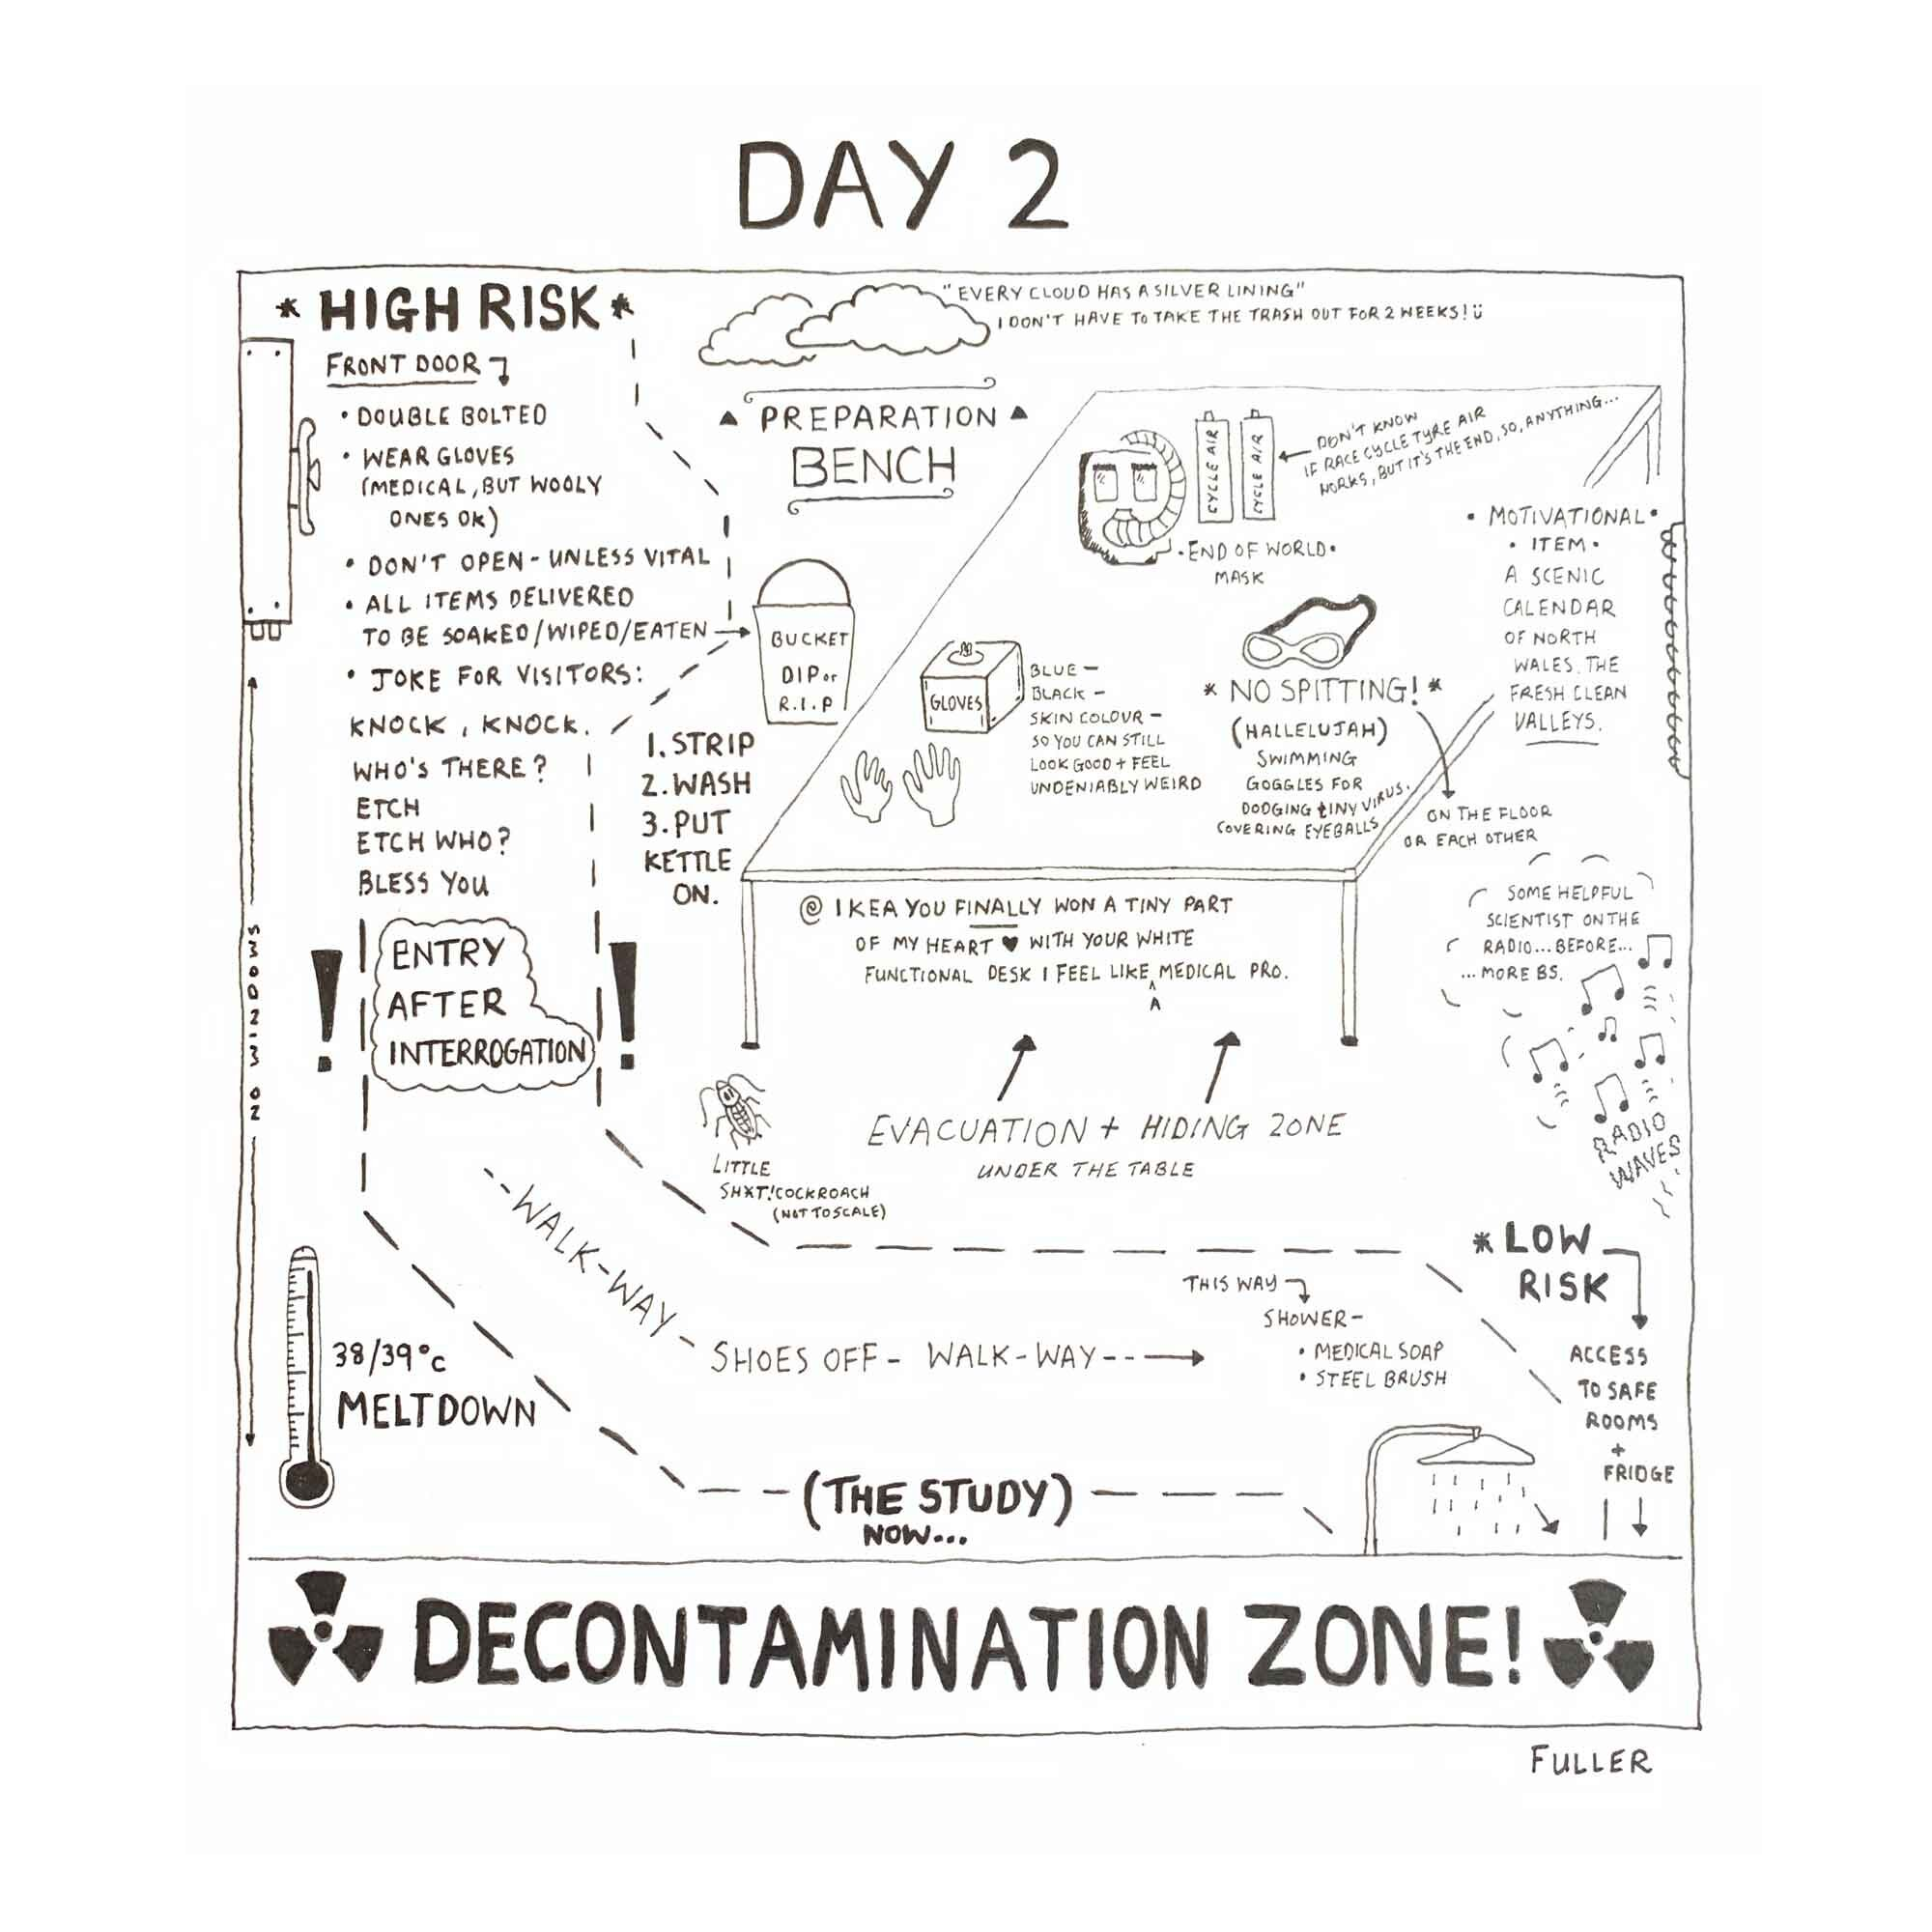 DAY 2 / Quarantine May By FULLER (Copy)